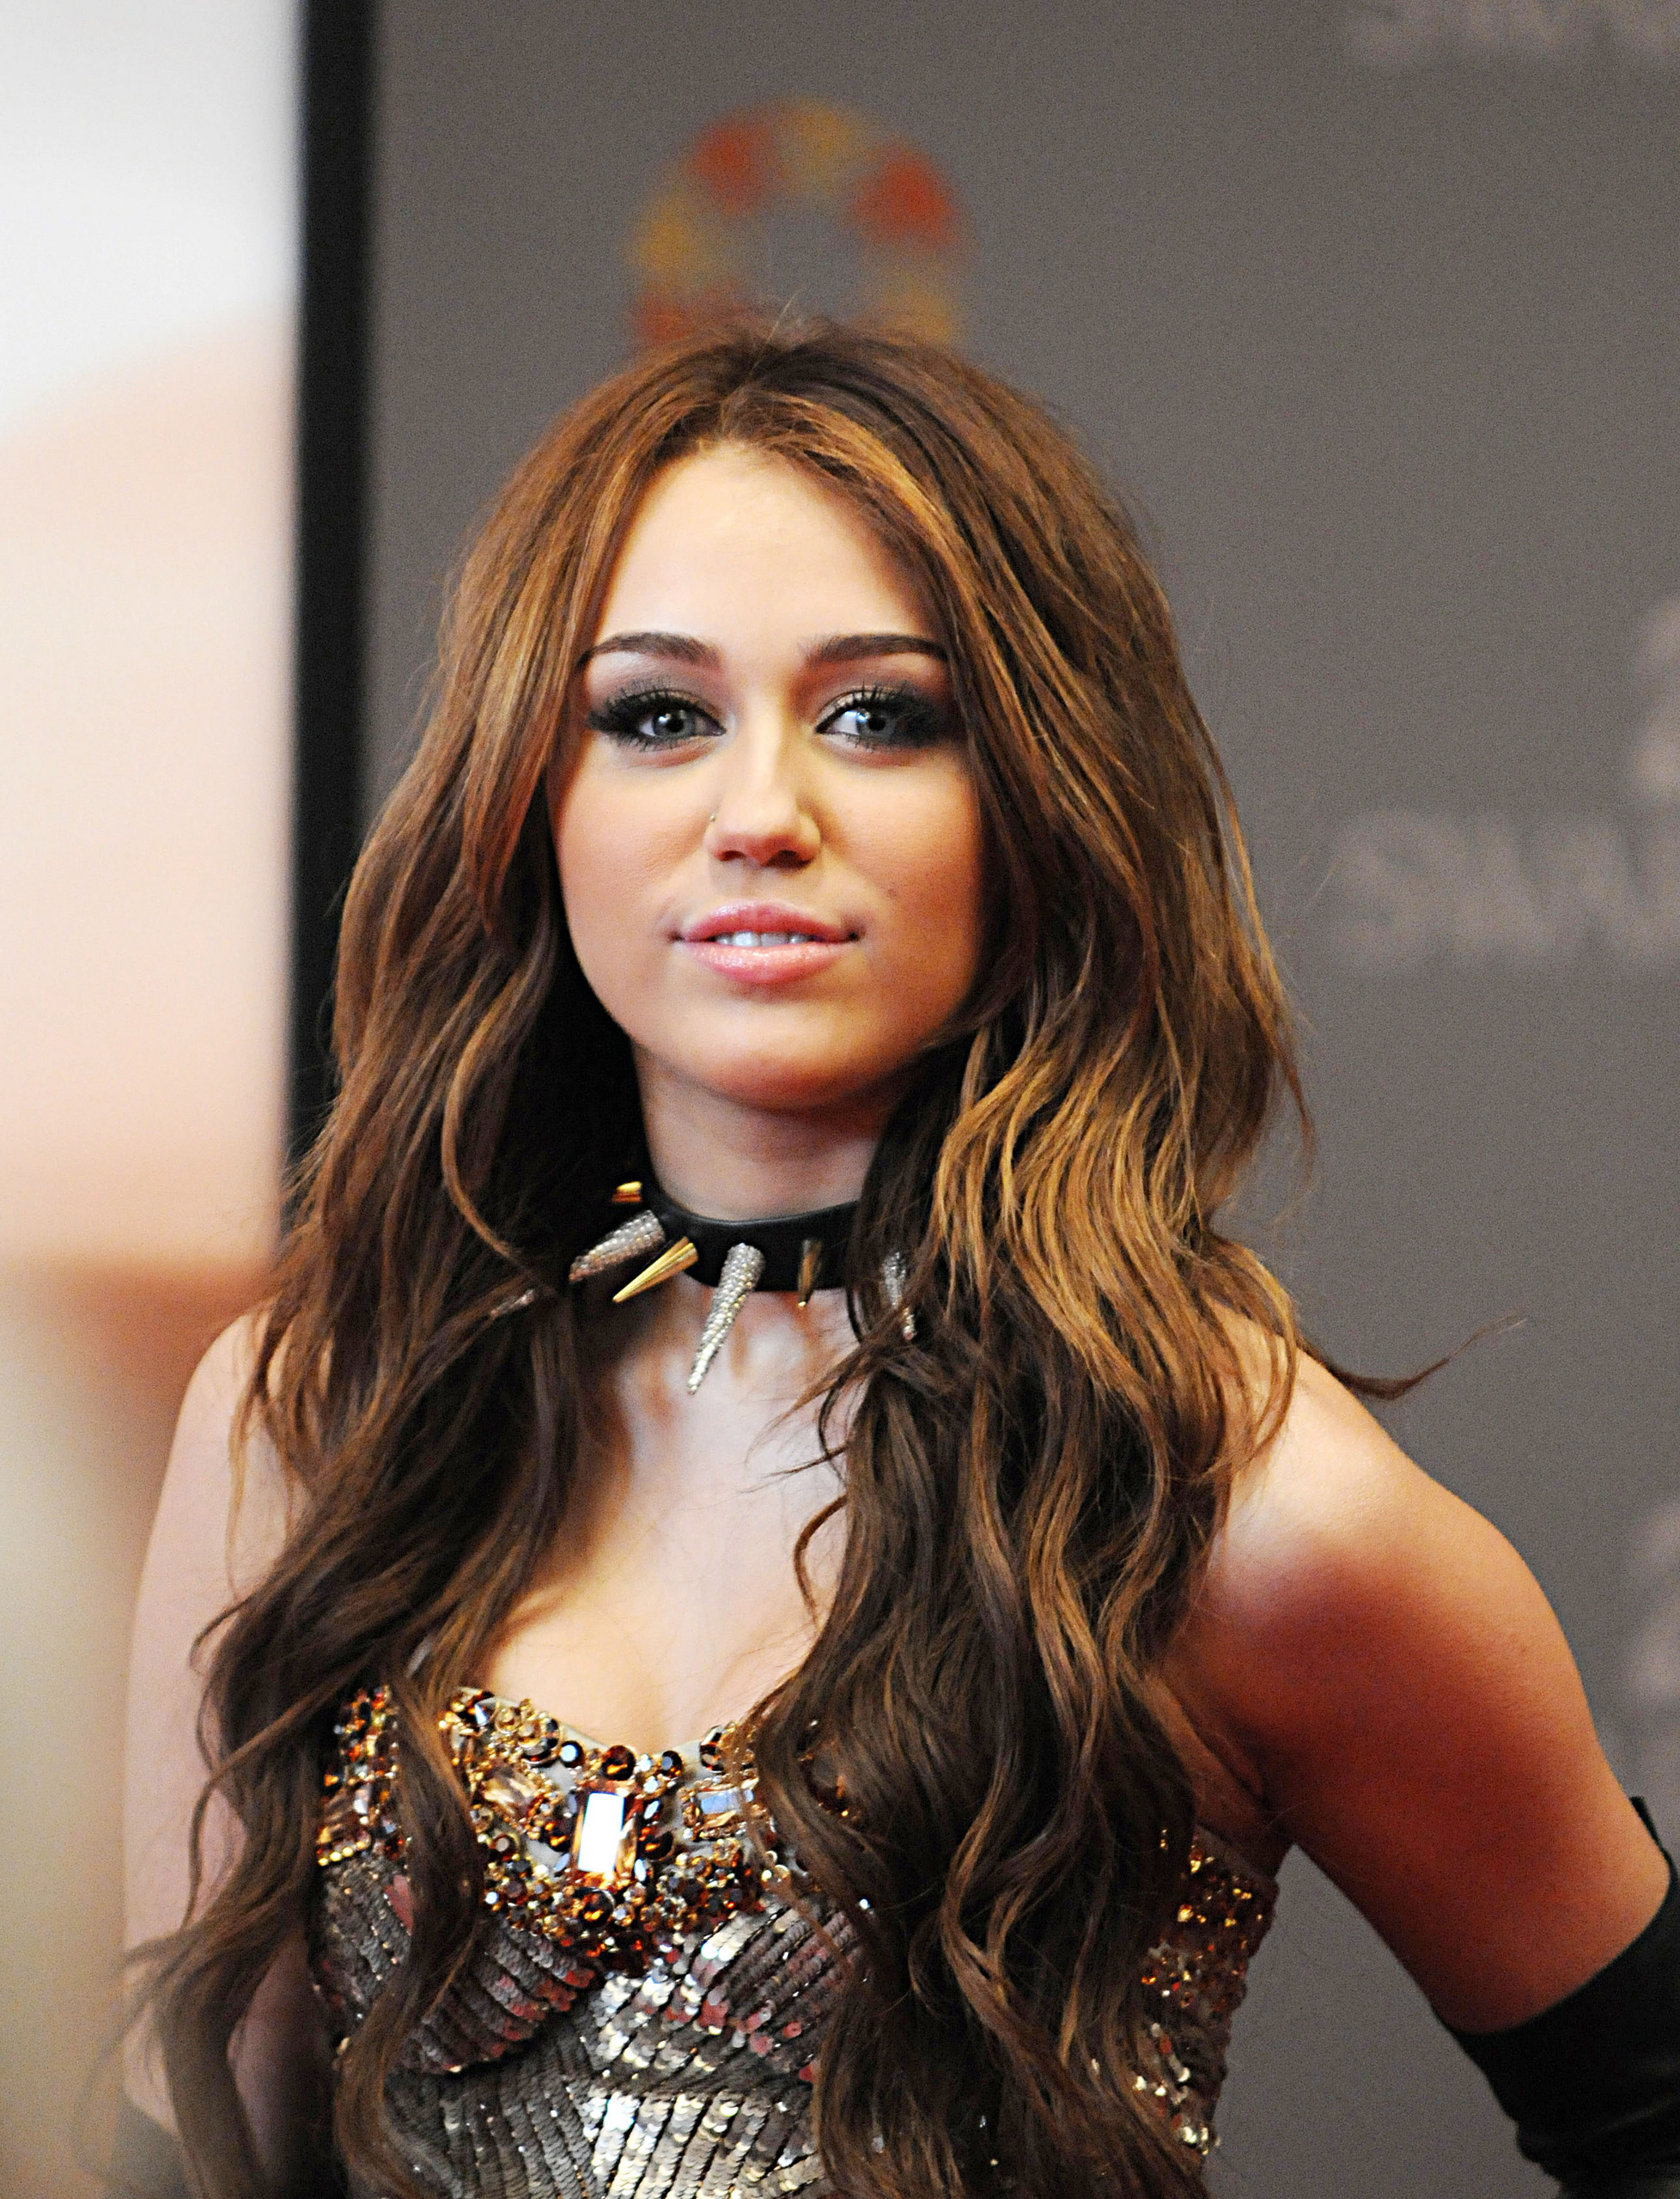 miley cyrus miley cyrus photo 26552515 fanpop